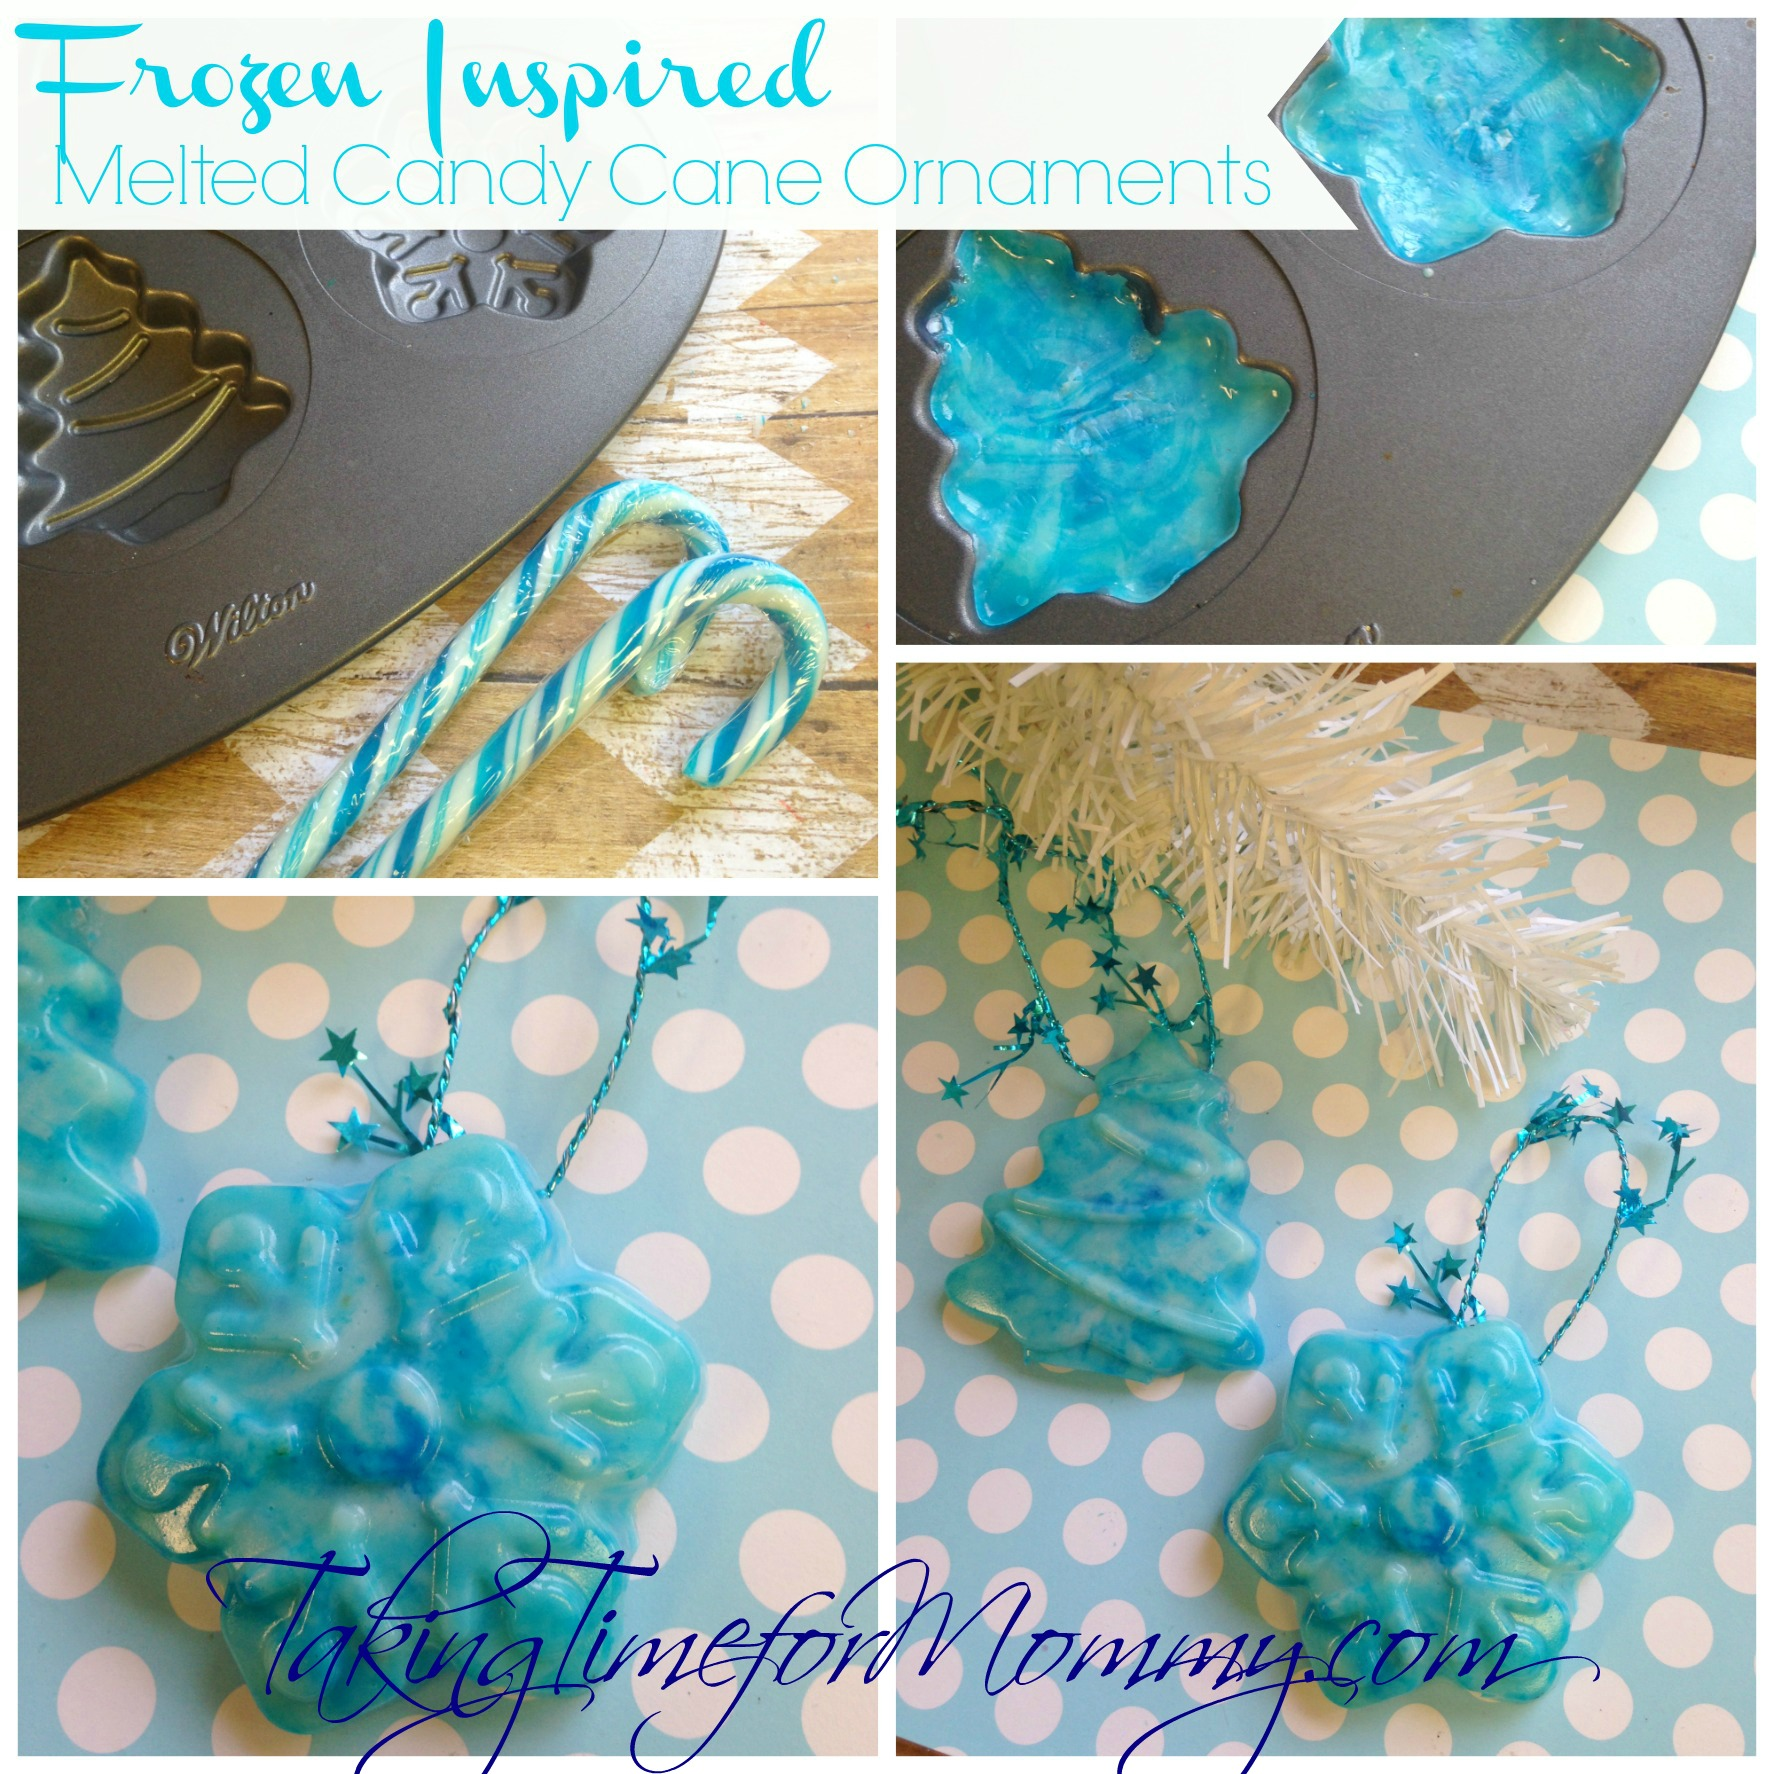 Melted Peppermint Candy Ornaments: Frozen Inspired Melted Candy Cane Ornament